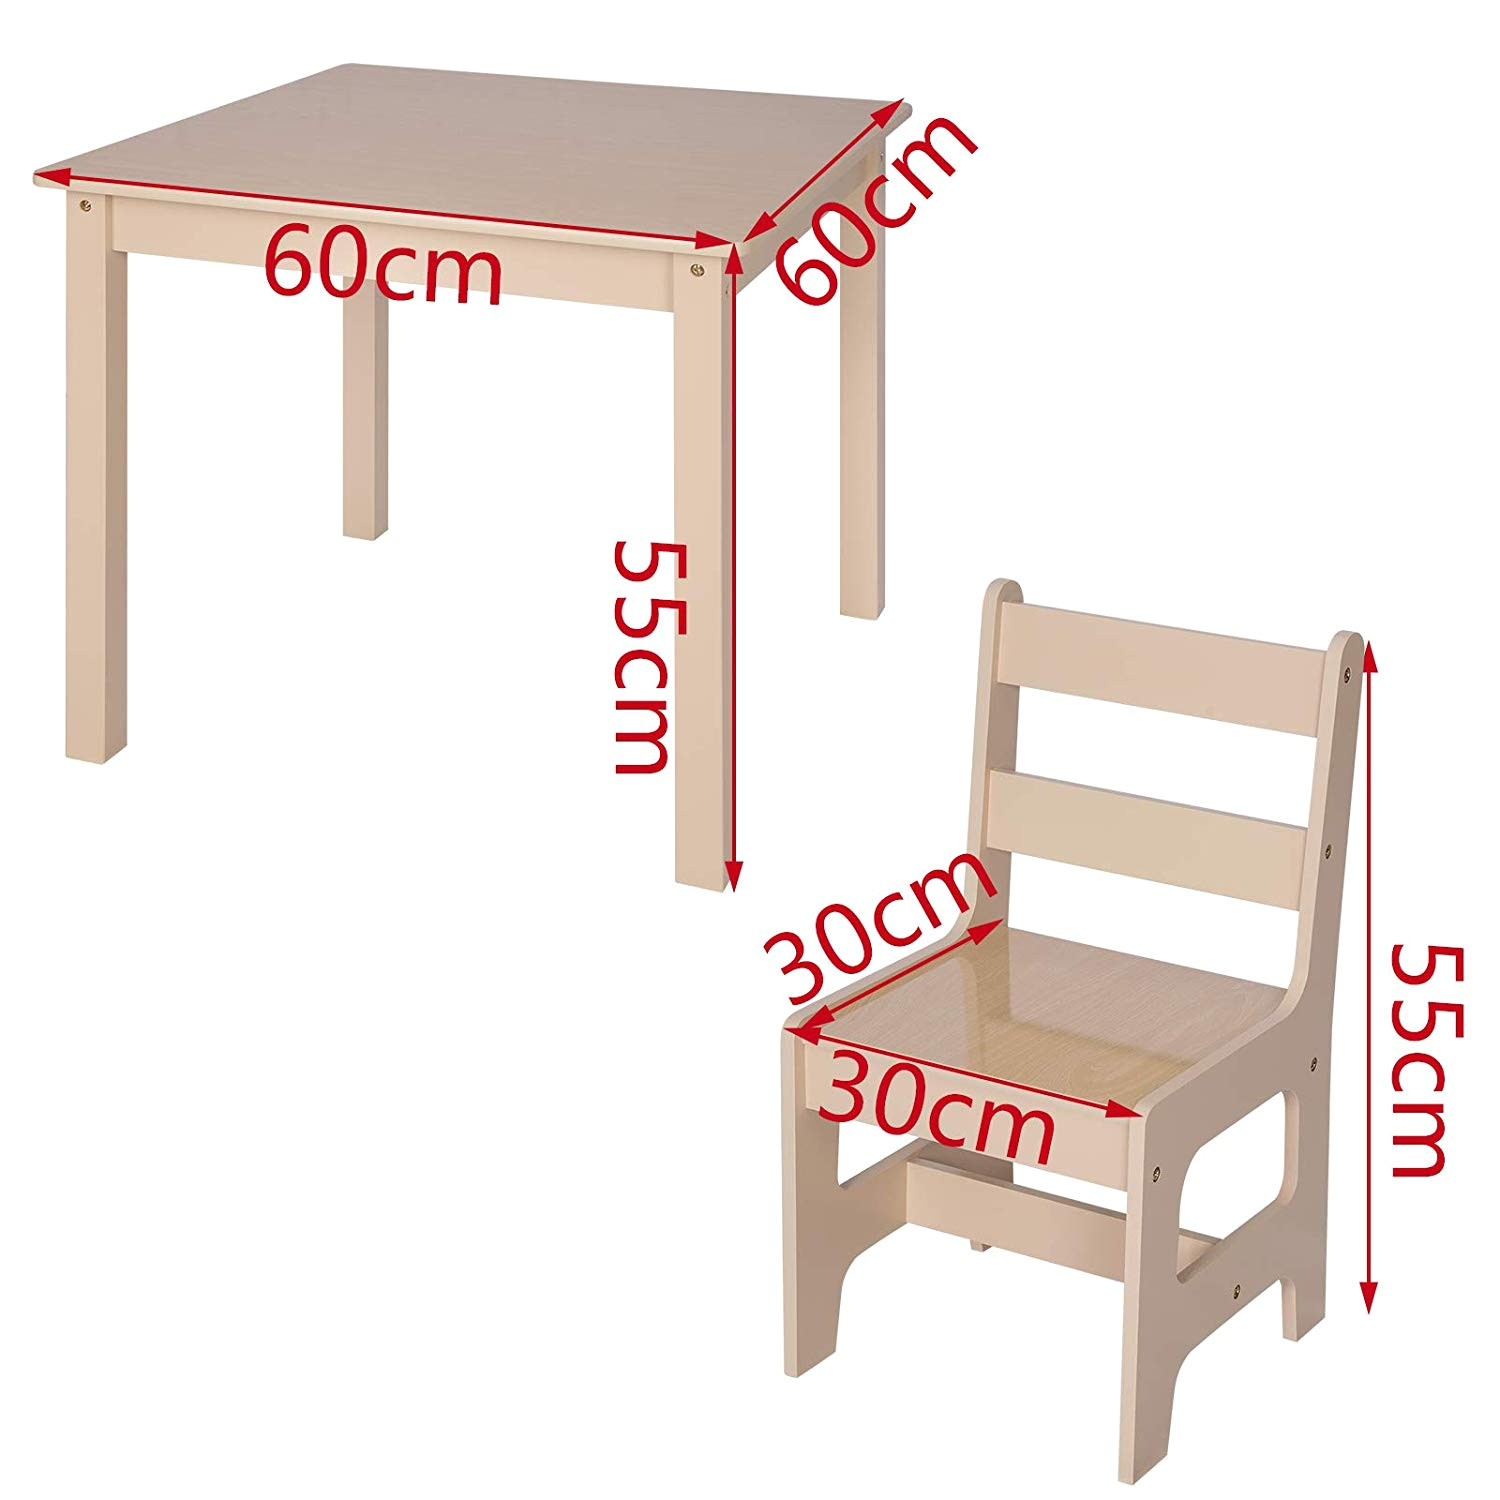 woltu wooden kids children s desk table with 2 chairs stools set for preschoolers boys and girls sg001 amazon co uk kitchen home